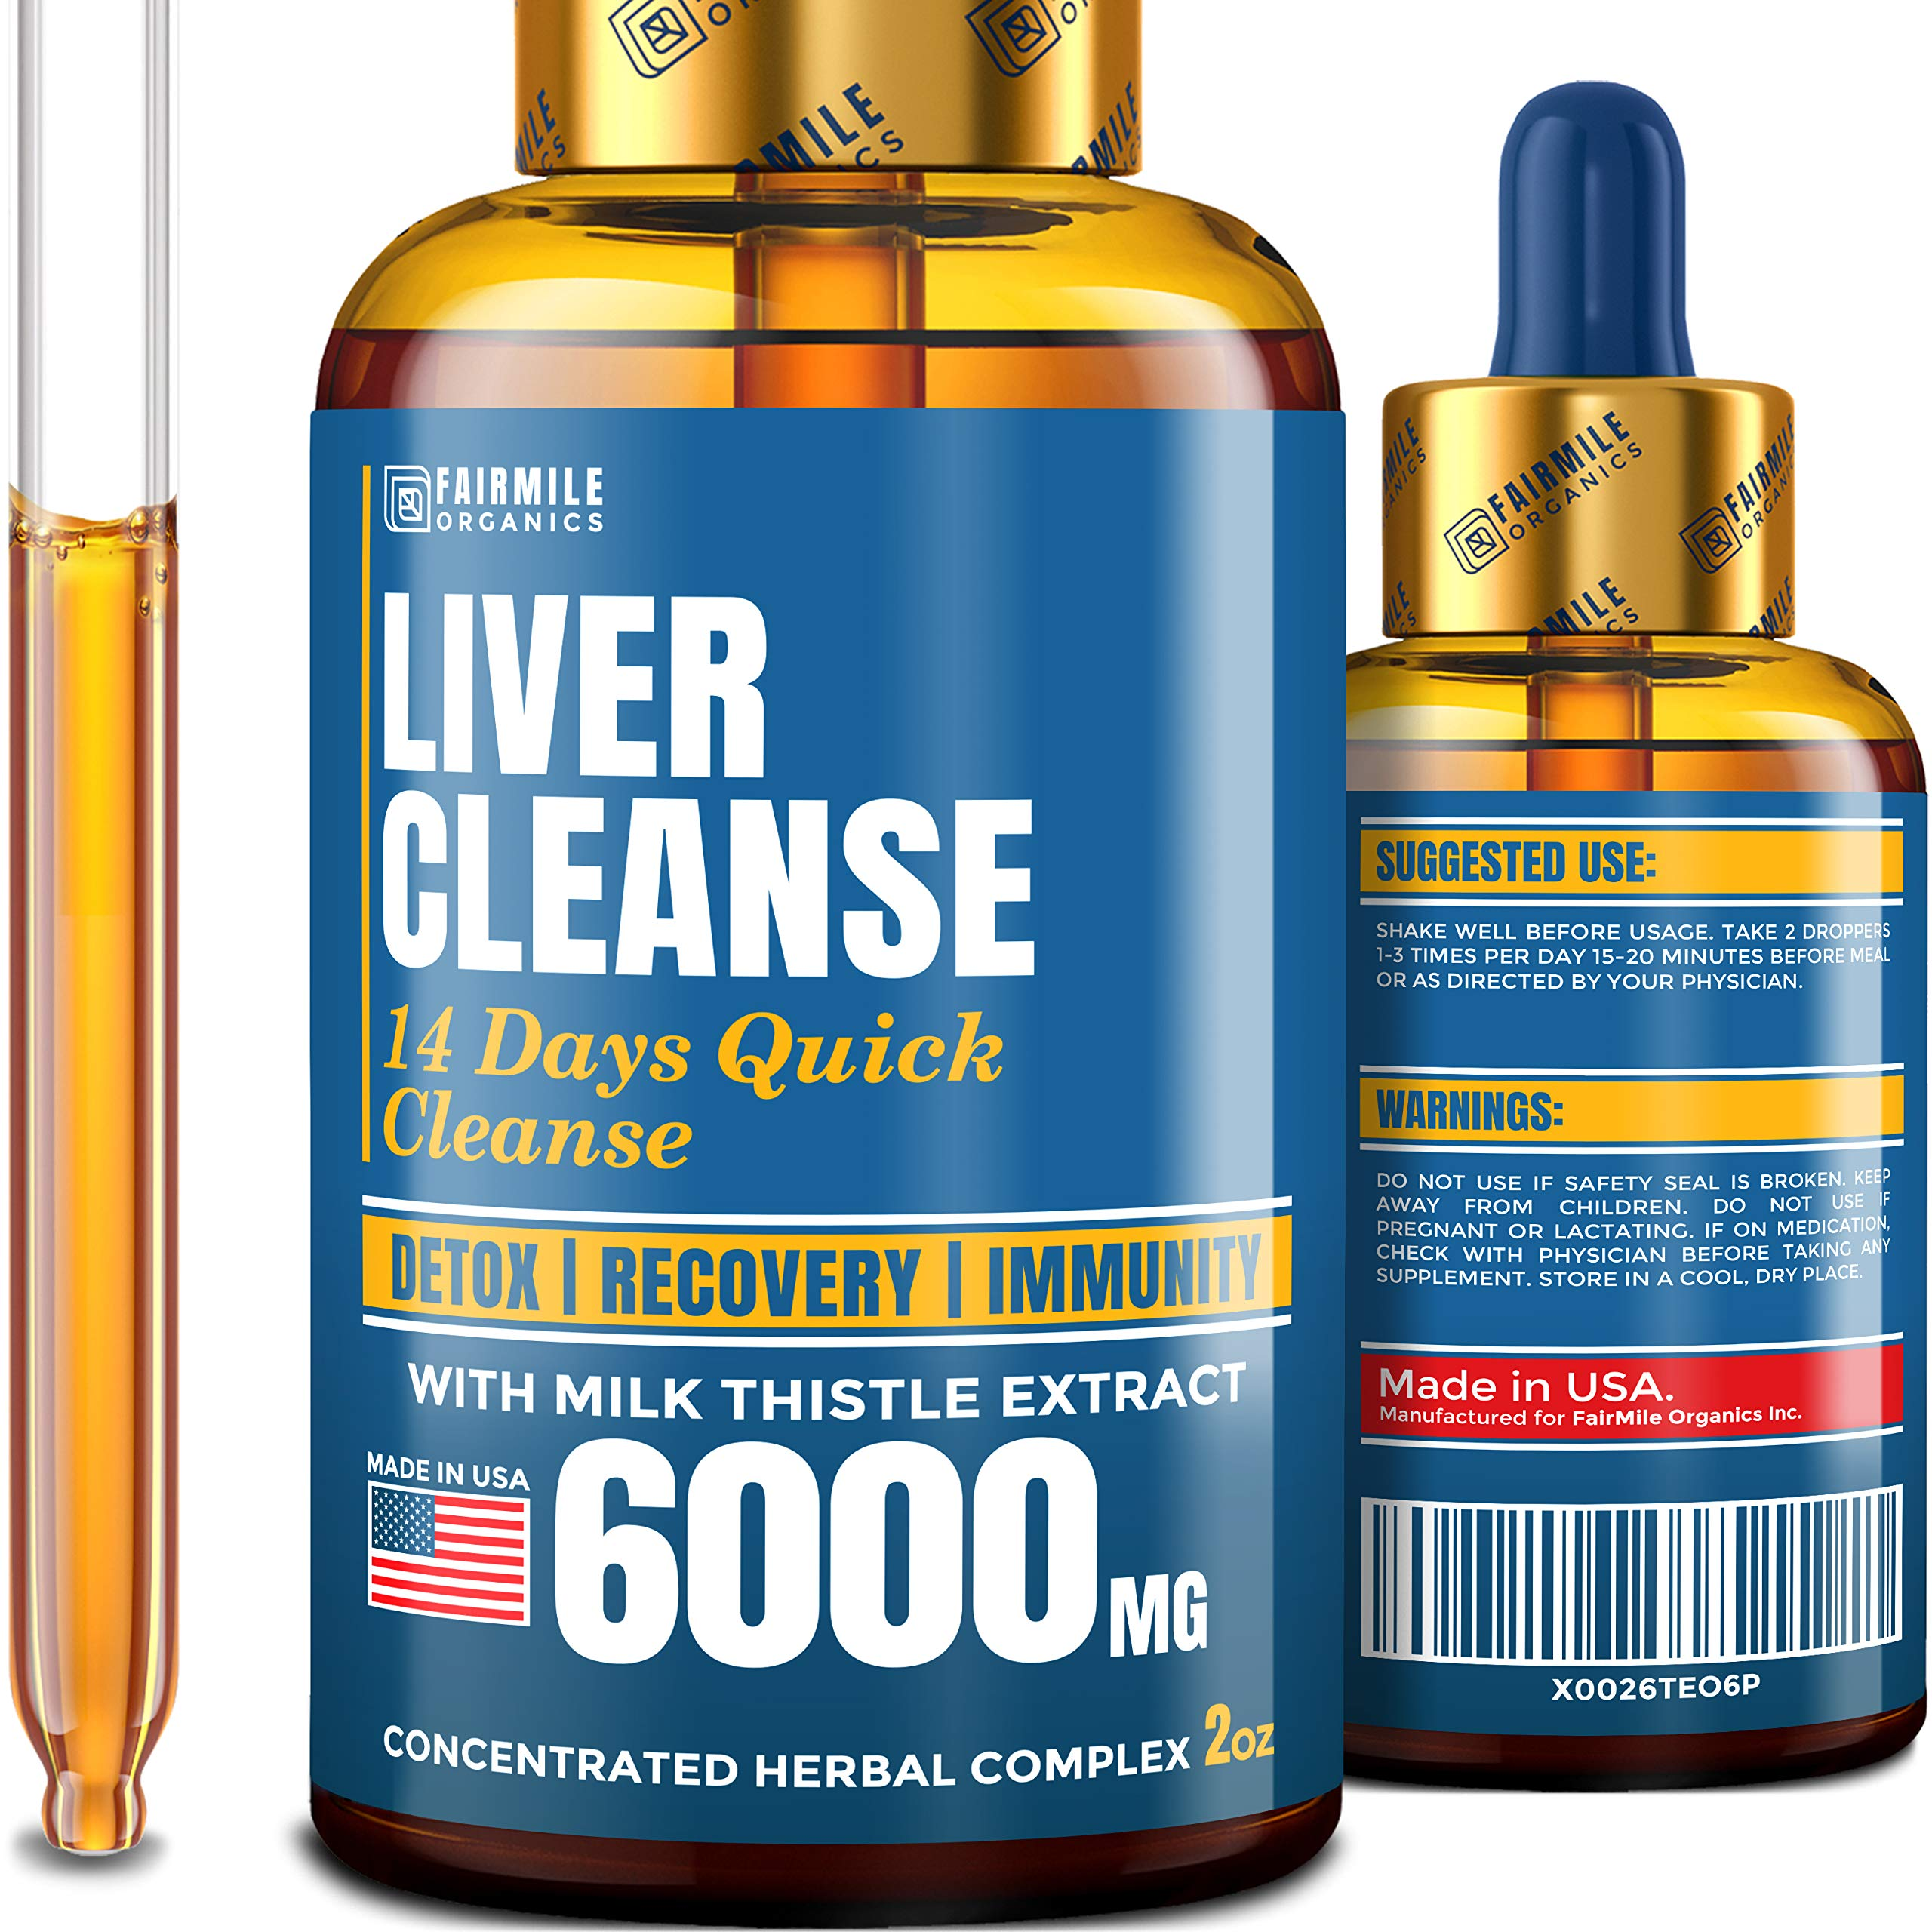 Liver Cleanse with 6000 MG Milk Thistle - Made in USA - Potent Liver Detox in Liquid Form for Best Absorption - 100% Natural Liver Support Supplement - Advanced Liver Detox Cleanse & Repair Formula by FAIRMILE Organics